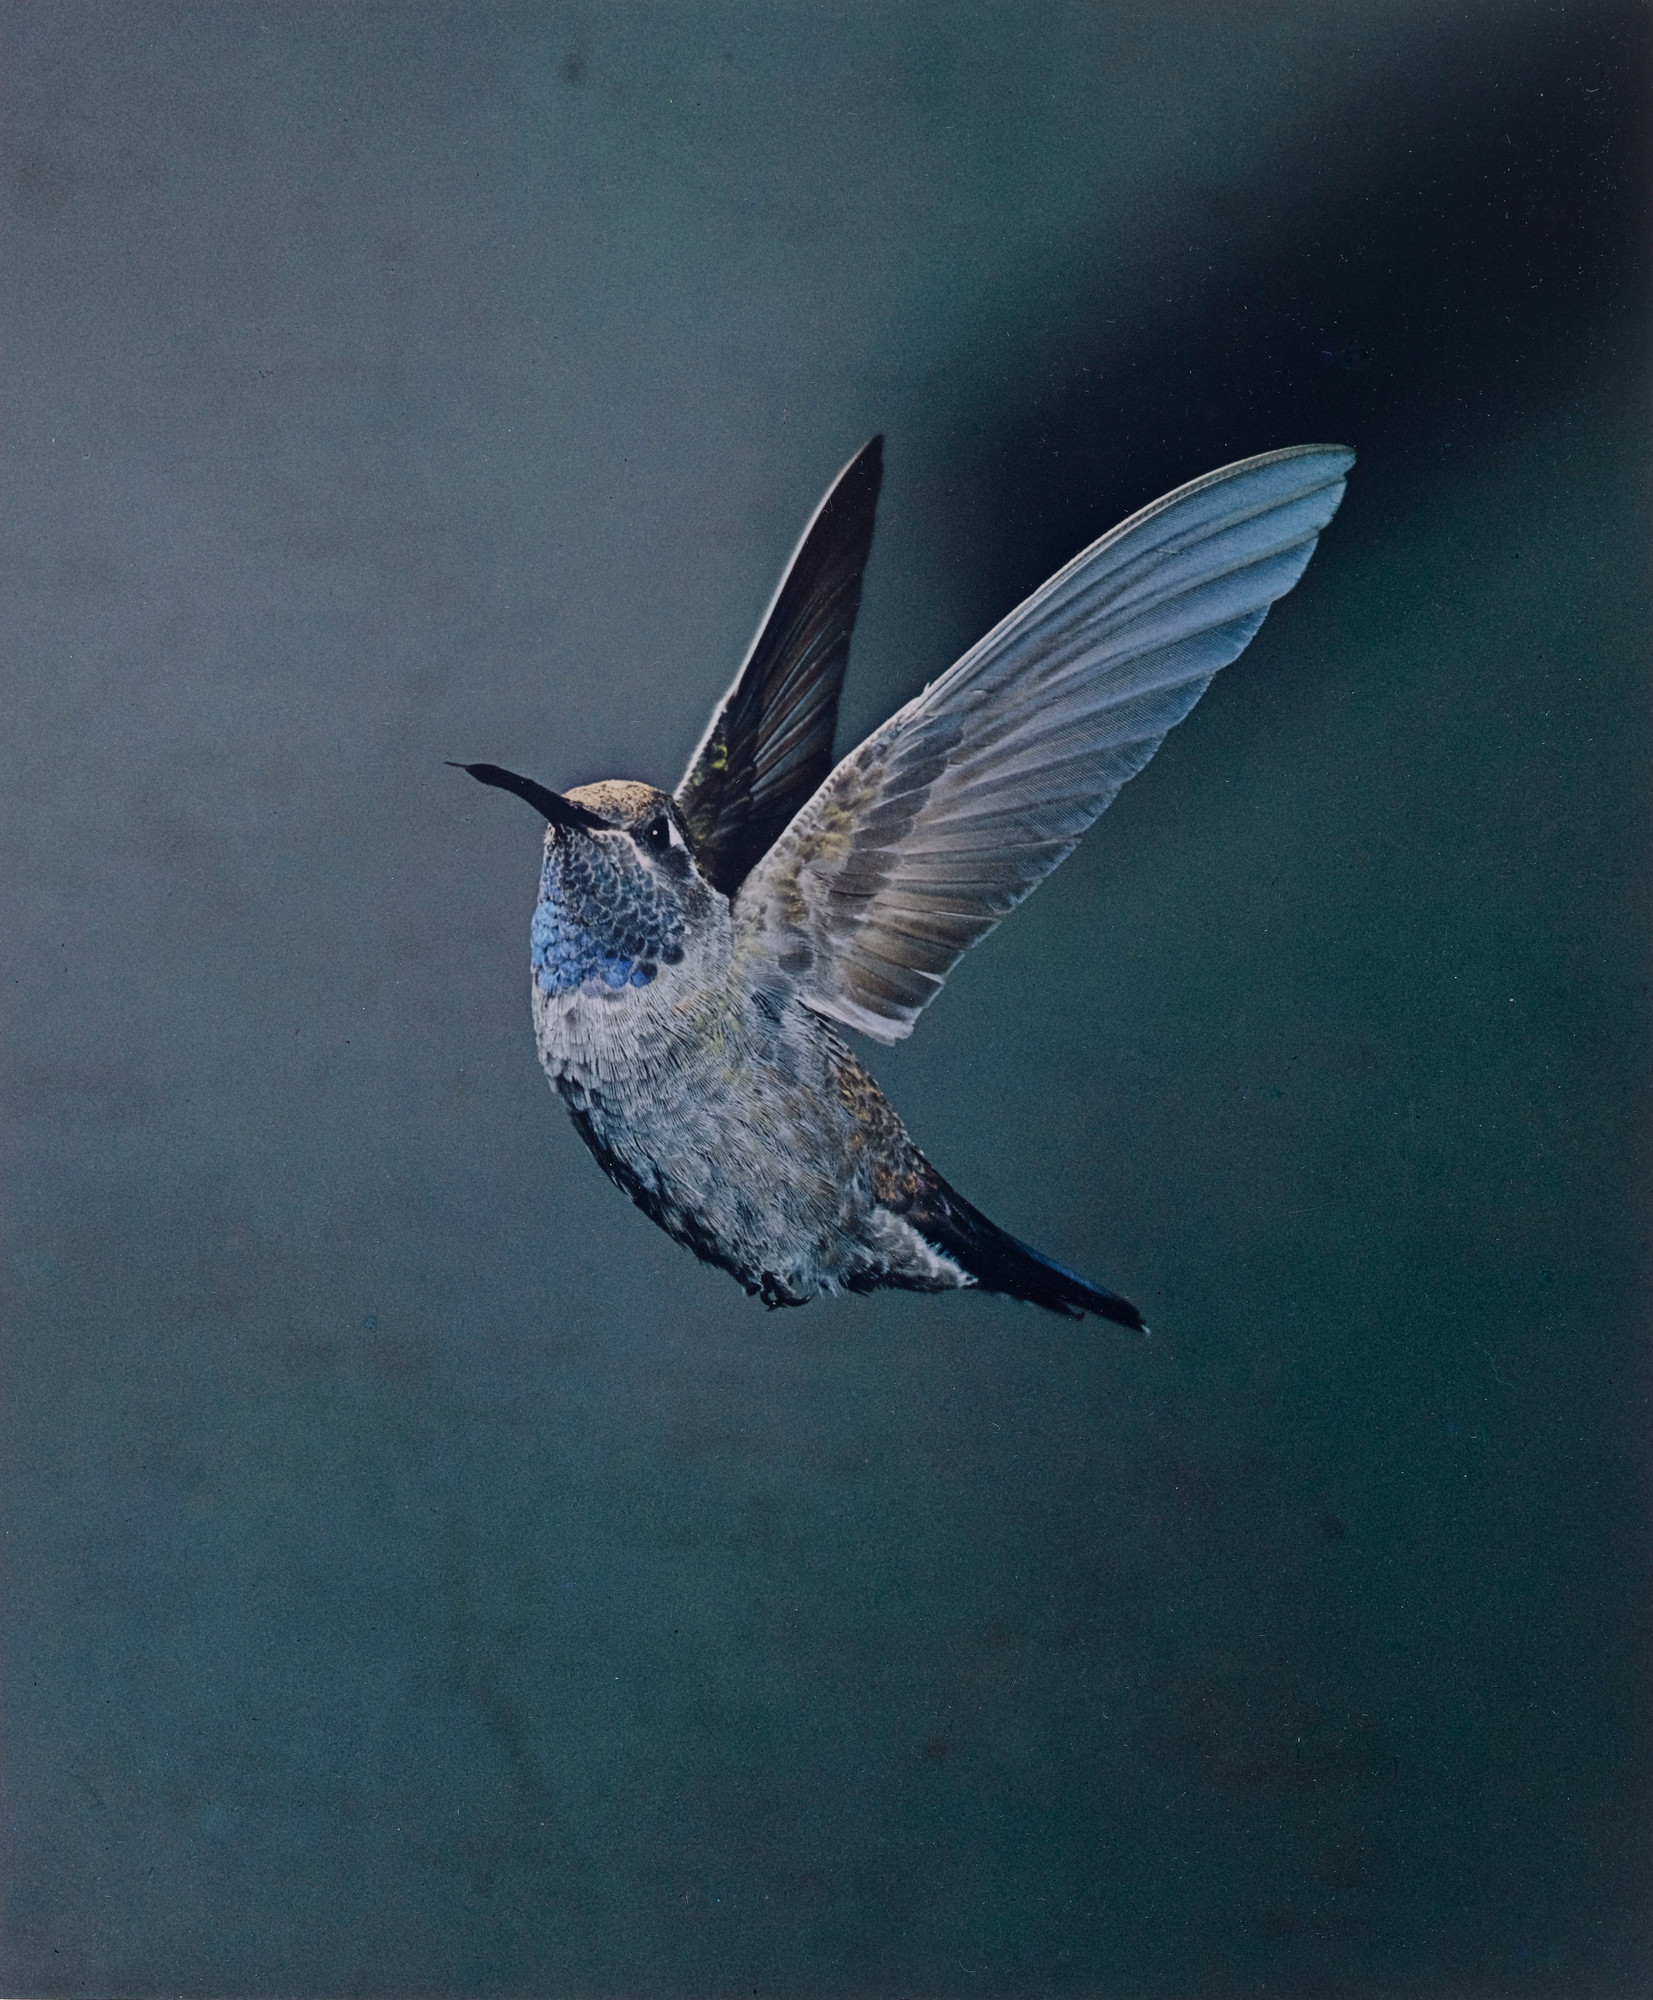 Eliot Porter. Blue-throated Hummingbird, Chiricahua Mountains, Arizona, May 1959 [Lampornis clemenciae]. 1959. Dye transfer print, 9 5⁄16 × 7 3/4″ (23.7 × 19.6 cm). The Museum of Modern Art, New York. Gift of David H. McAlpin. © 1990 Amon Carter Museum of American Art